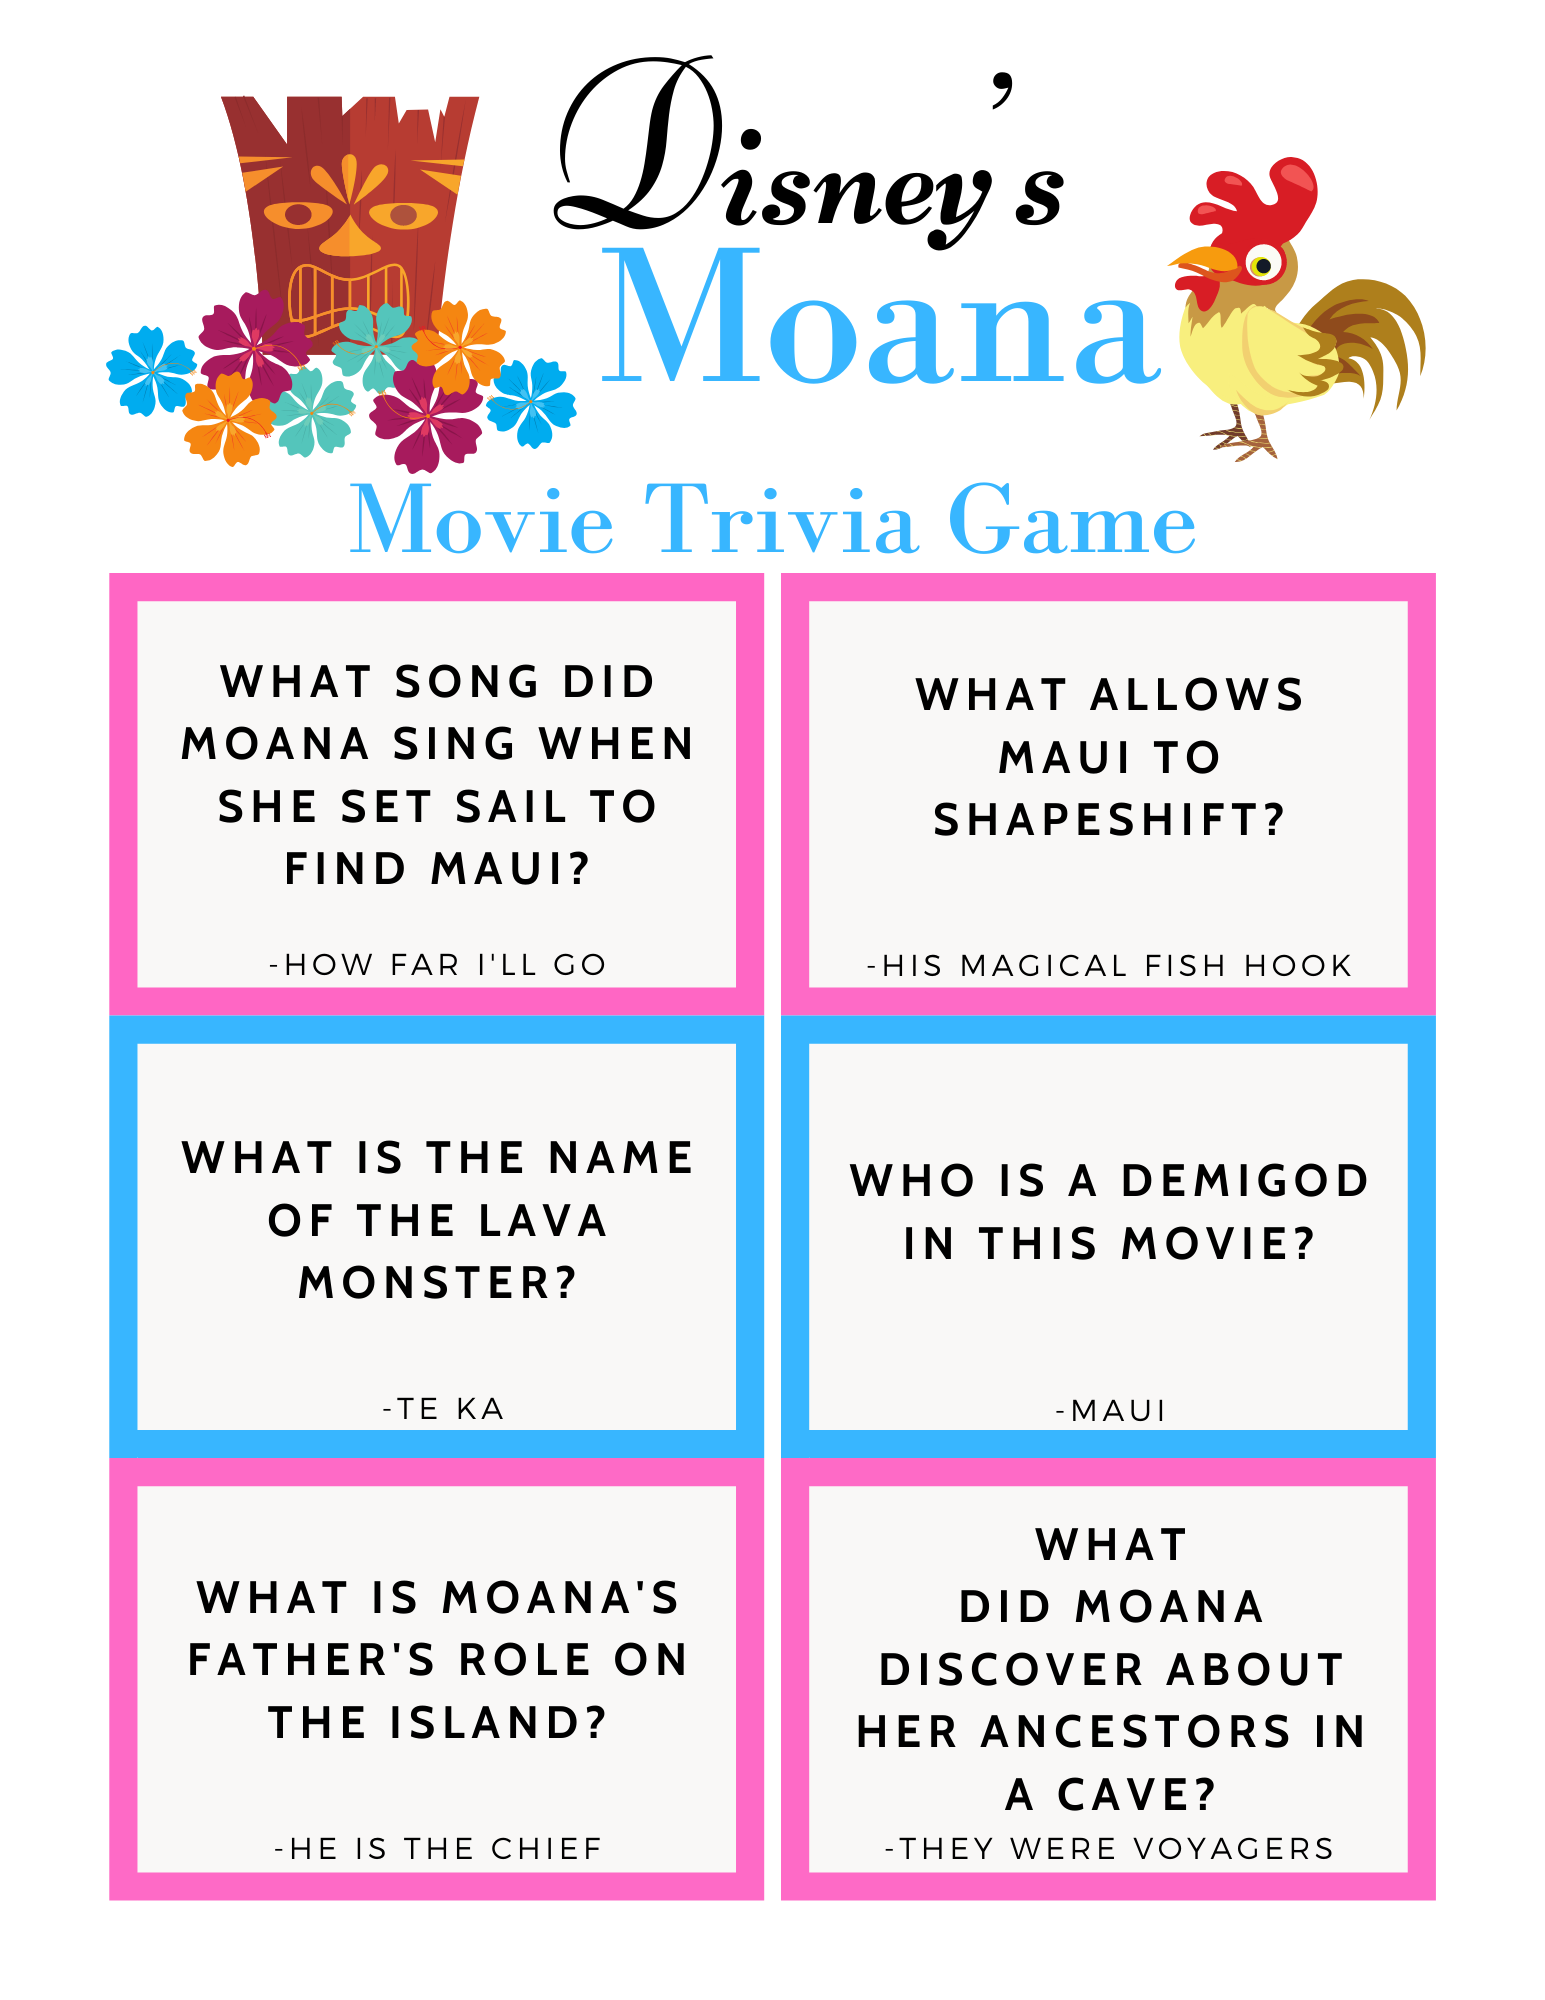 Disney Moana Trivia Game from top Disney Blog Marcie and the Mouse